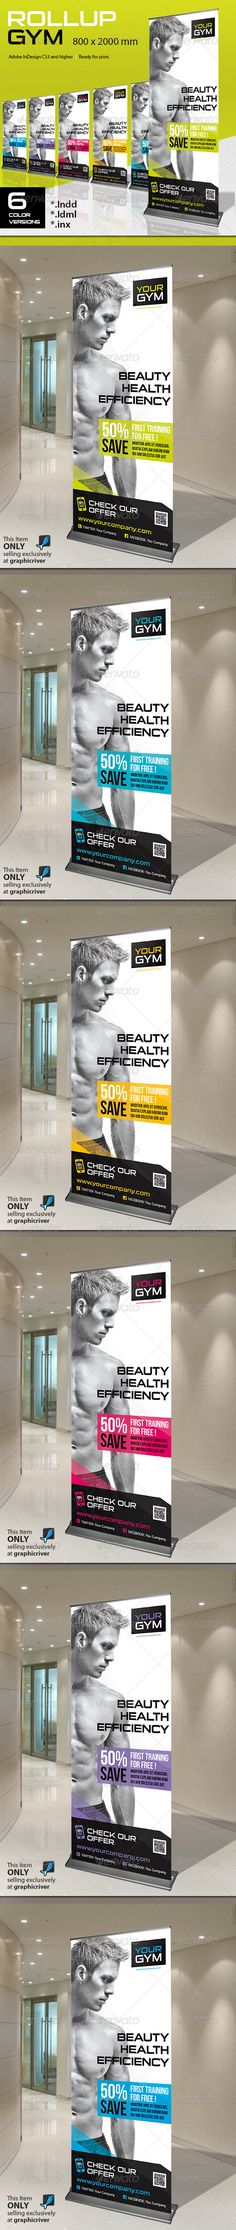 Buy Roll-Up Gym by Paulnomade on GraphicRiver. Roll-Up Gym. Modern and elegant design for banner/rollup. Perfect for gyms and sport clubs promotion. All elements ar. Signage Design, Brochure Design, Banner Design, Brochure Ideas, Standee Design, Roll Up Design, Rollup Banner, Retail Signage, Event Banner